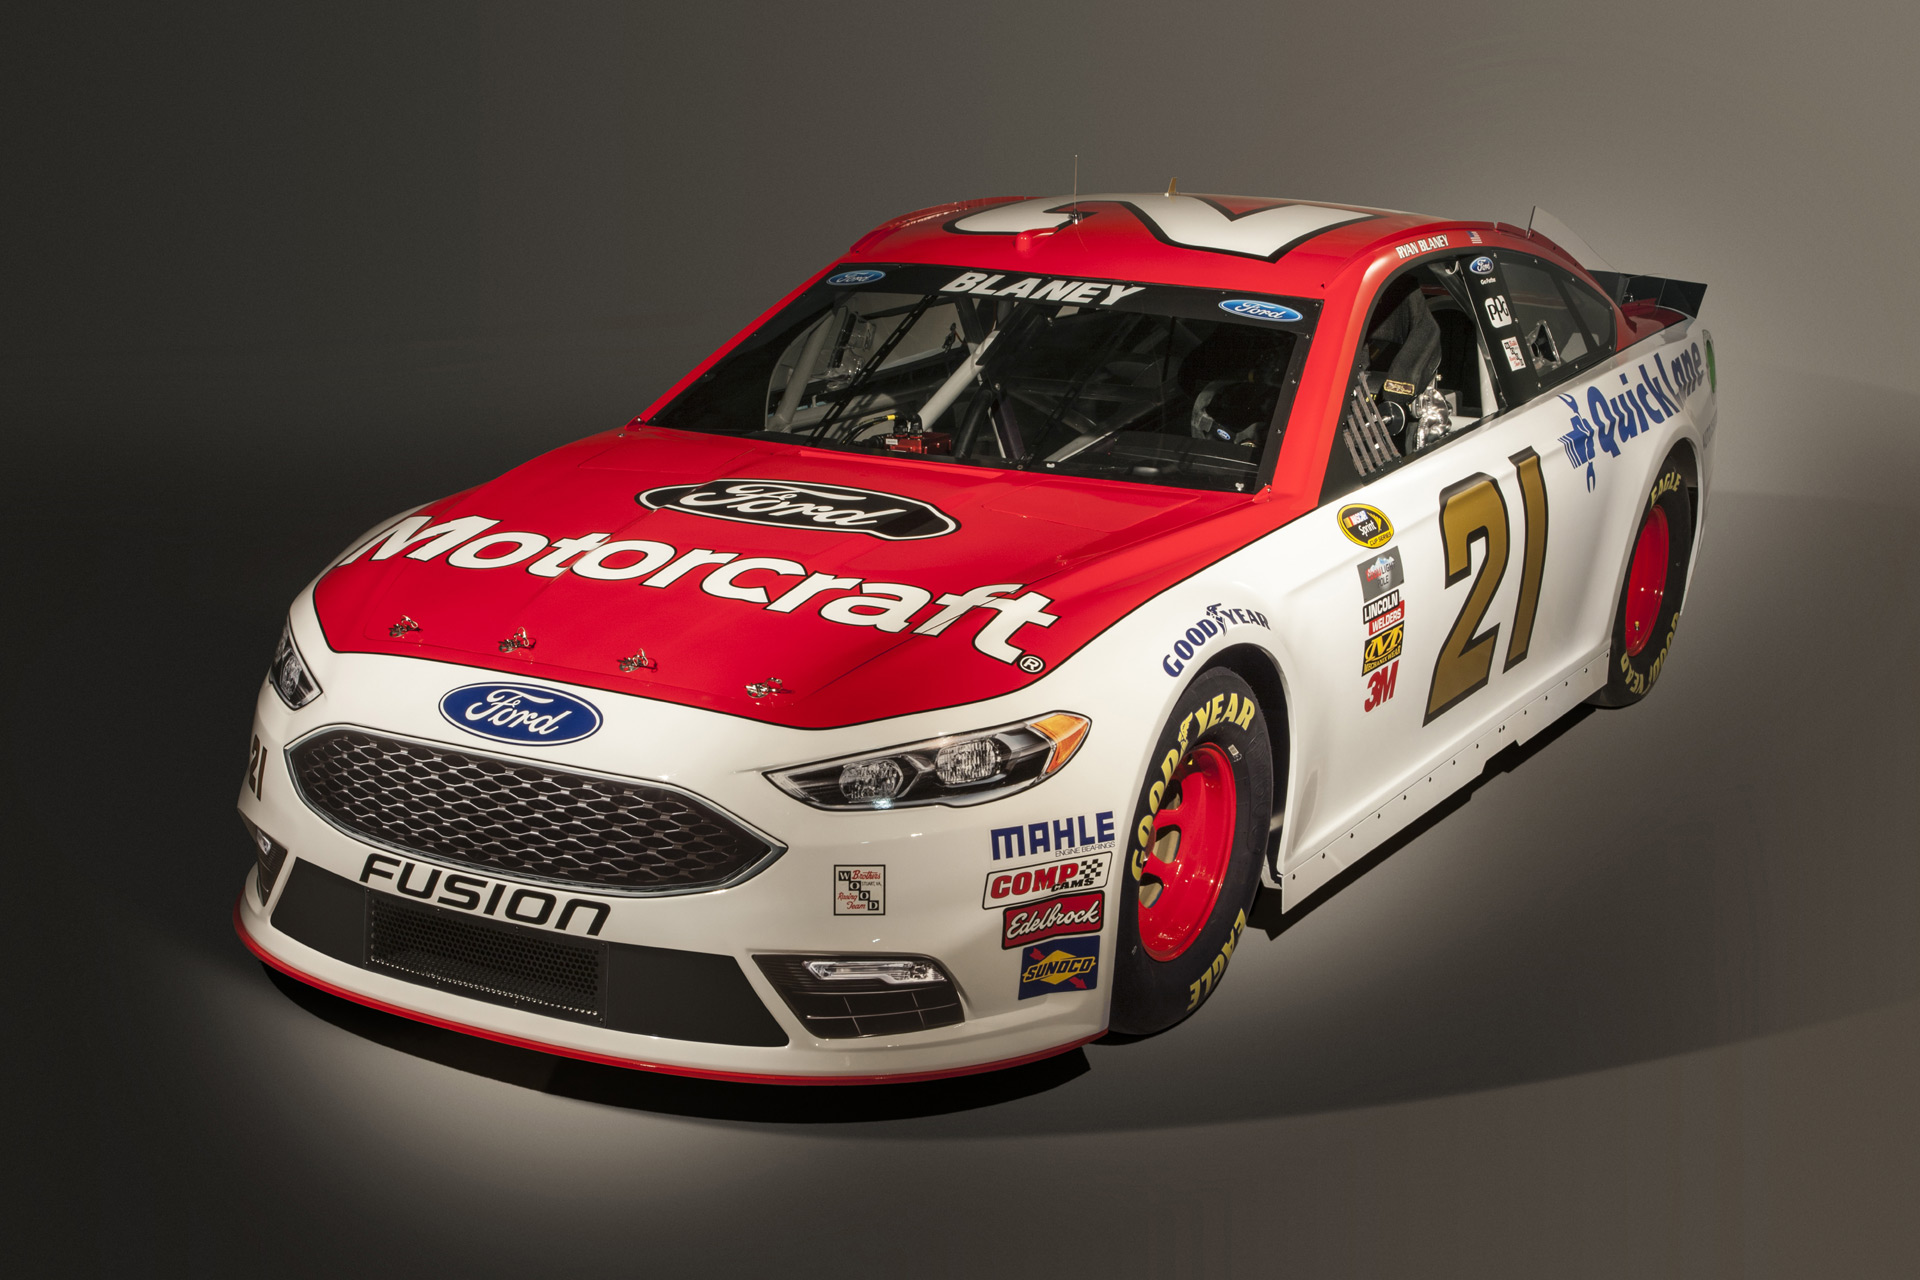 hight resolution of 2016 ford fusion nascar sprint cup racer adopts new looknascar wiring diagrams 14